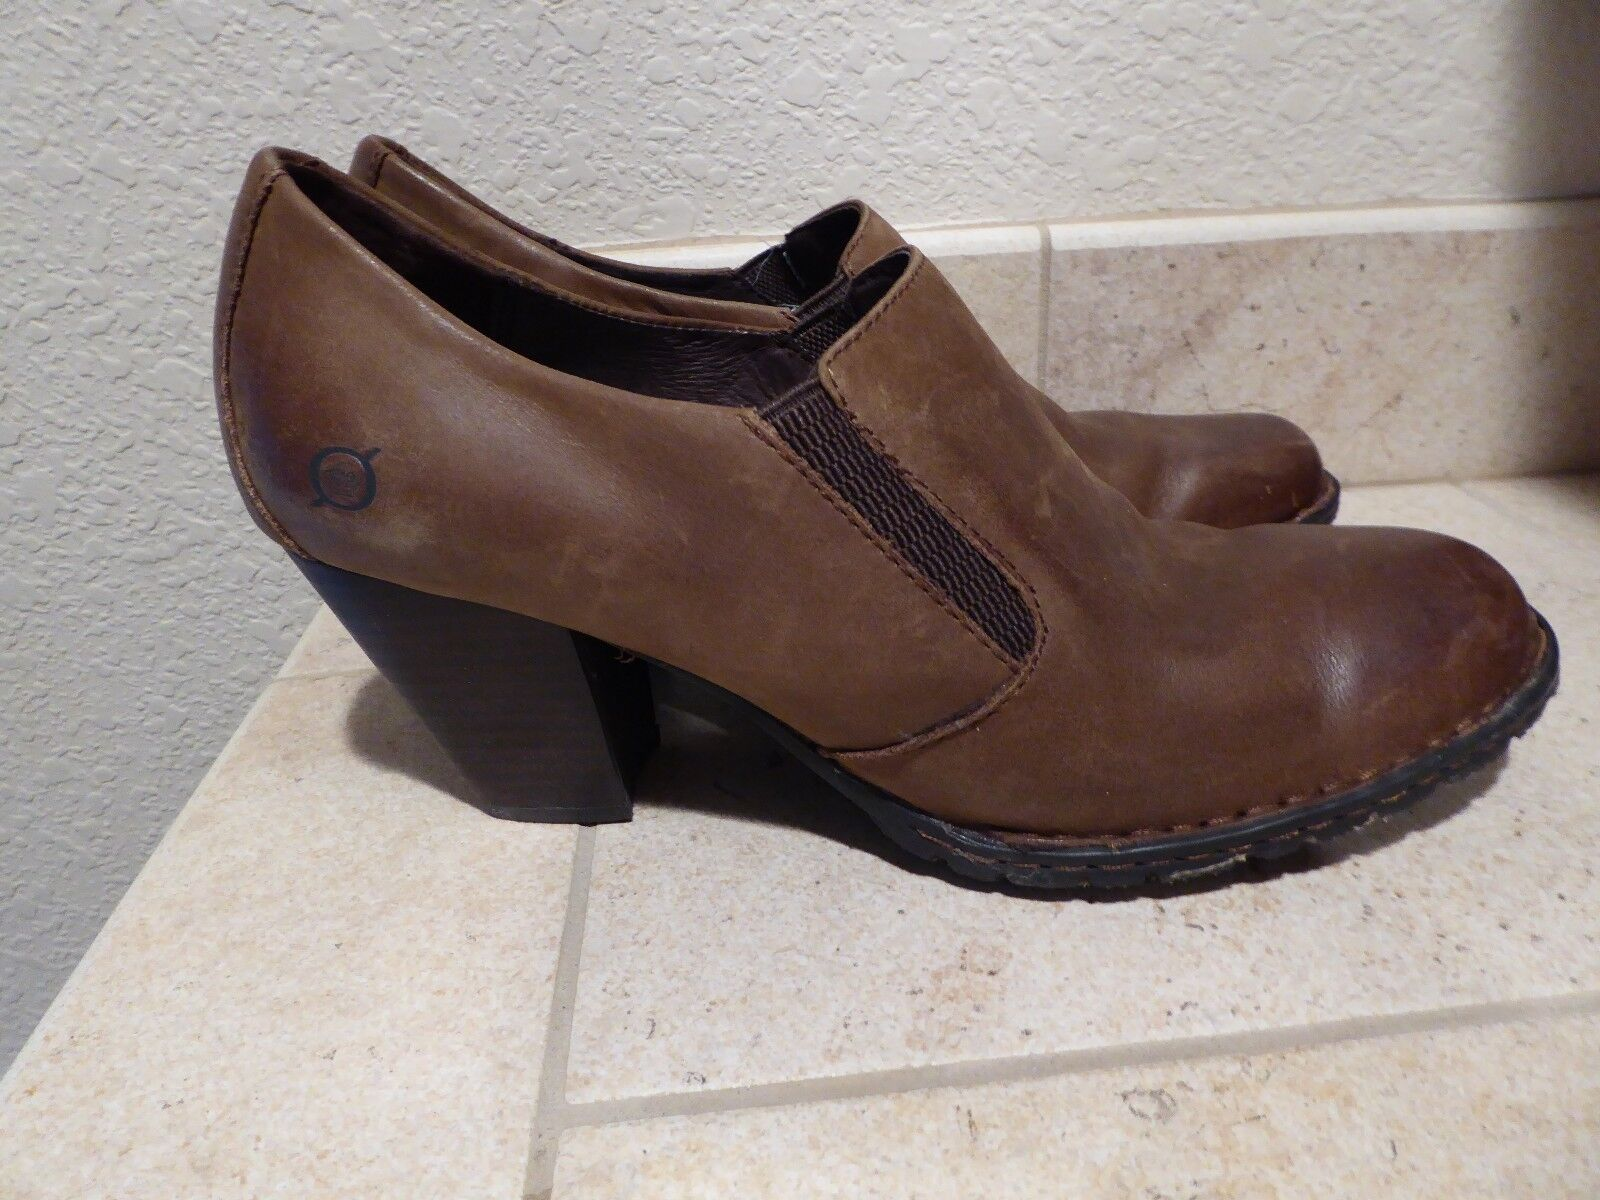 NEW Born B.O.C. Concept Women's Katy Brown Leather Short boots Slip Ons  9.5M